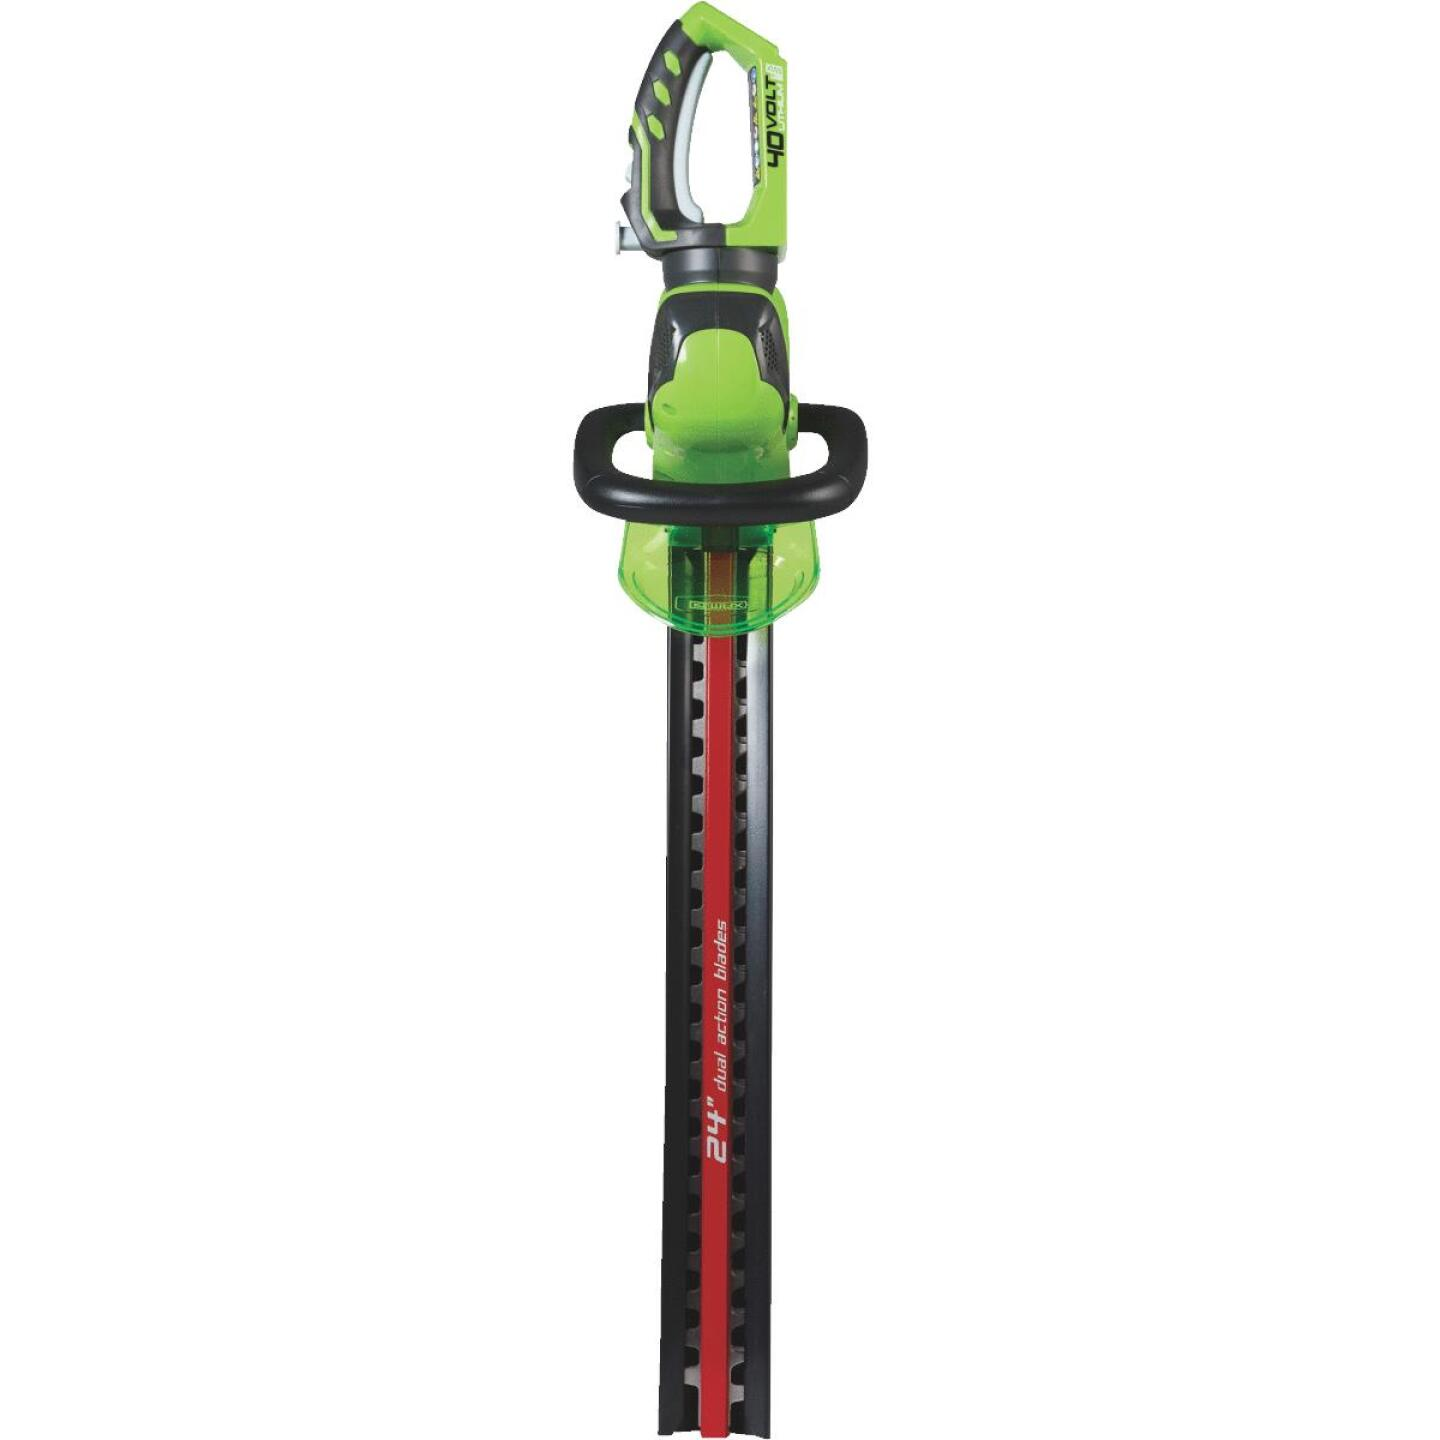 Greenworks G-Max 24 In. 40V Lithium Ion Cordless Hedge Trimmer (Bare Tool) Image 3